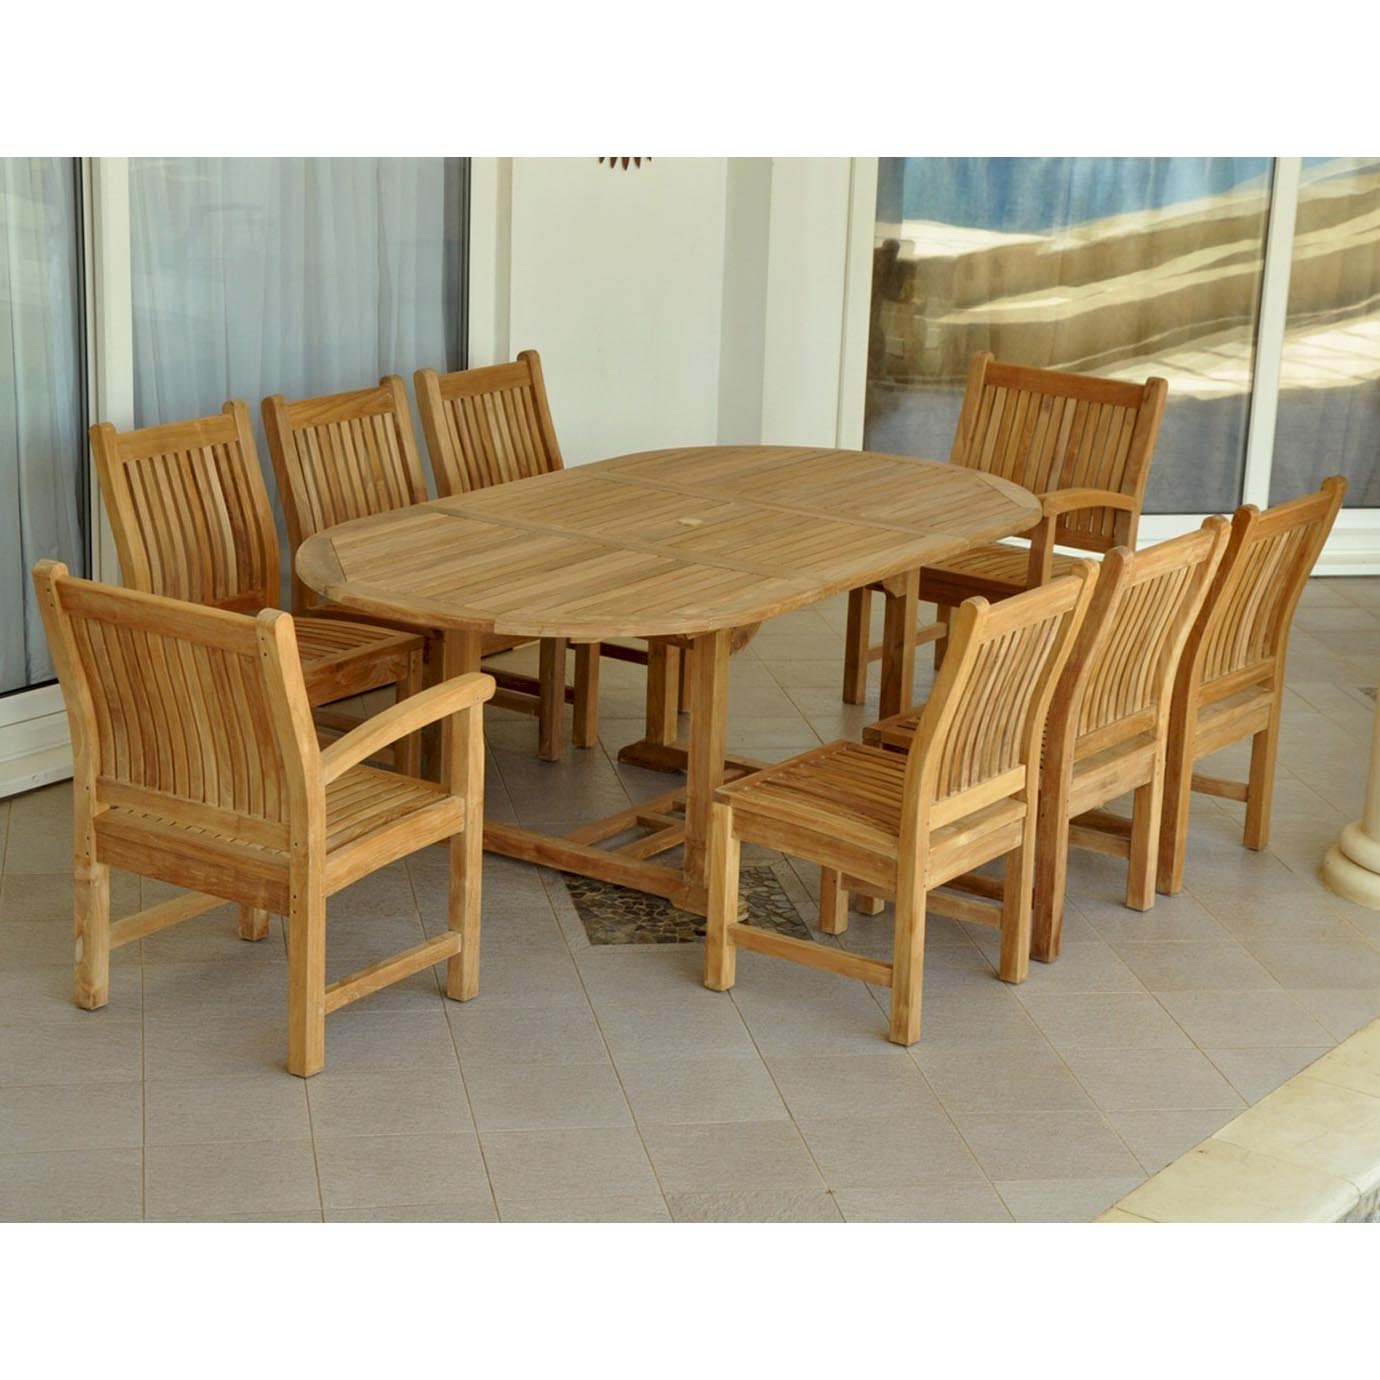 Select Teak-Bahama-Oval-Table-Sahara-Arm-Chairs-Side-Chairs Product Picture 6